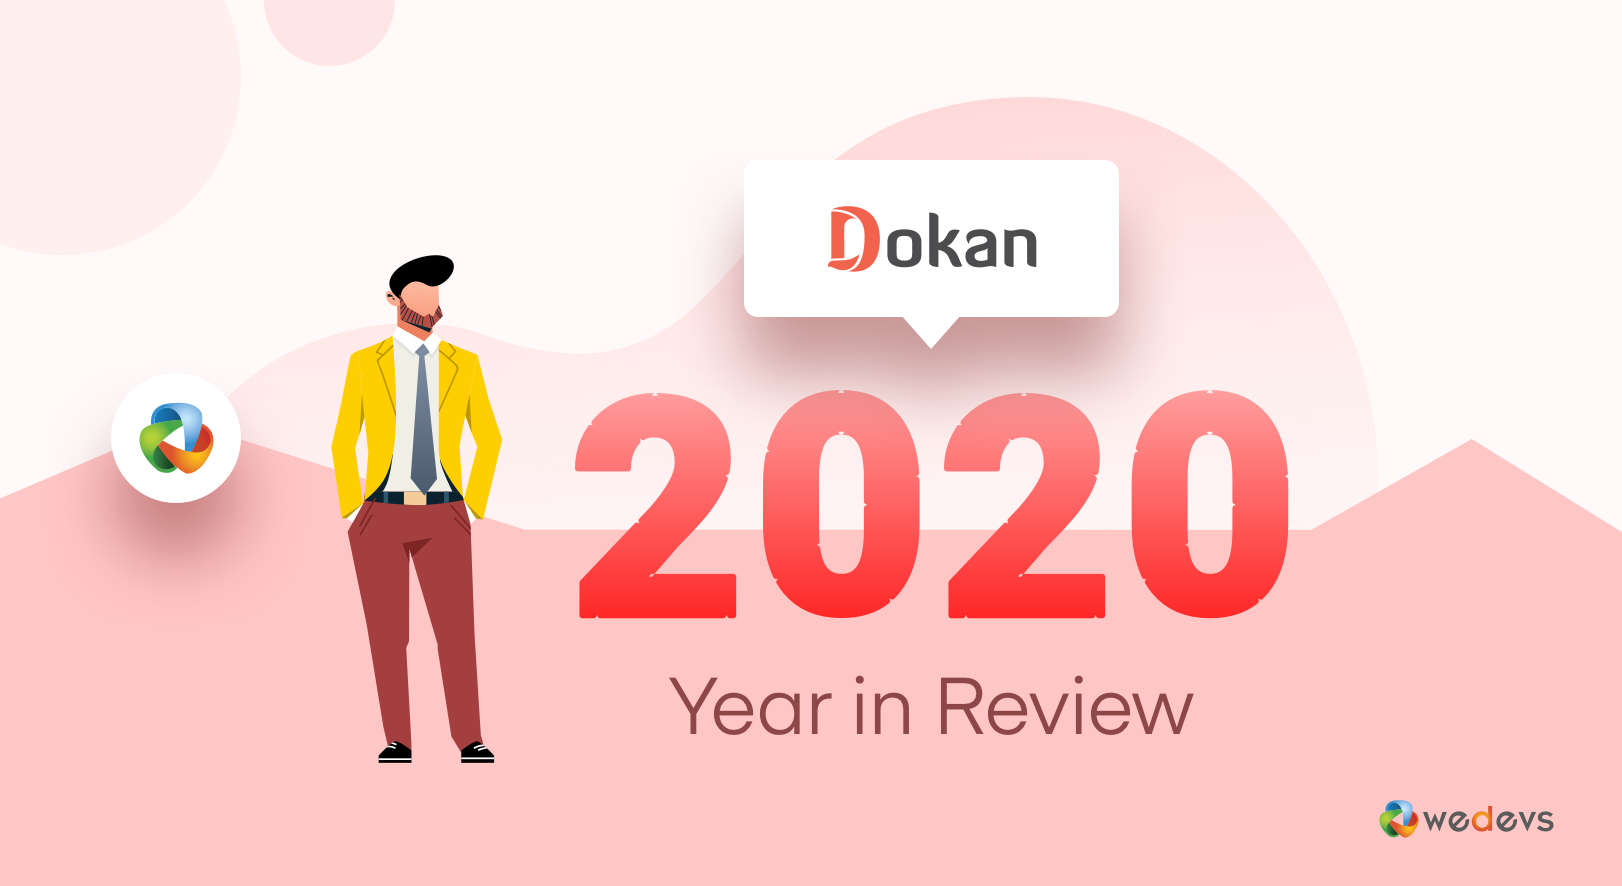 Dokan Year in Review 2020: A Year of Empowering People throughout The Pandemic